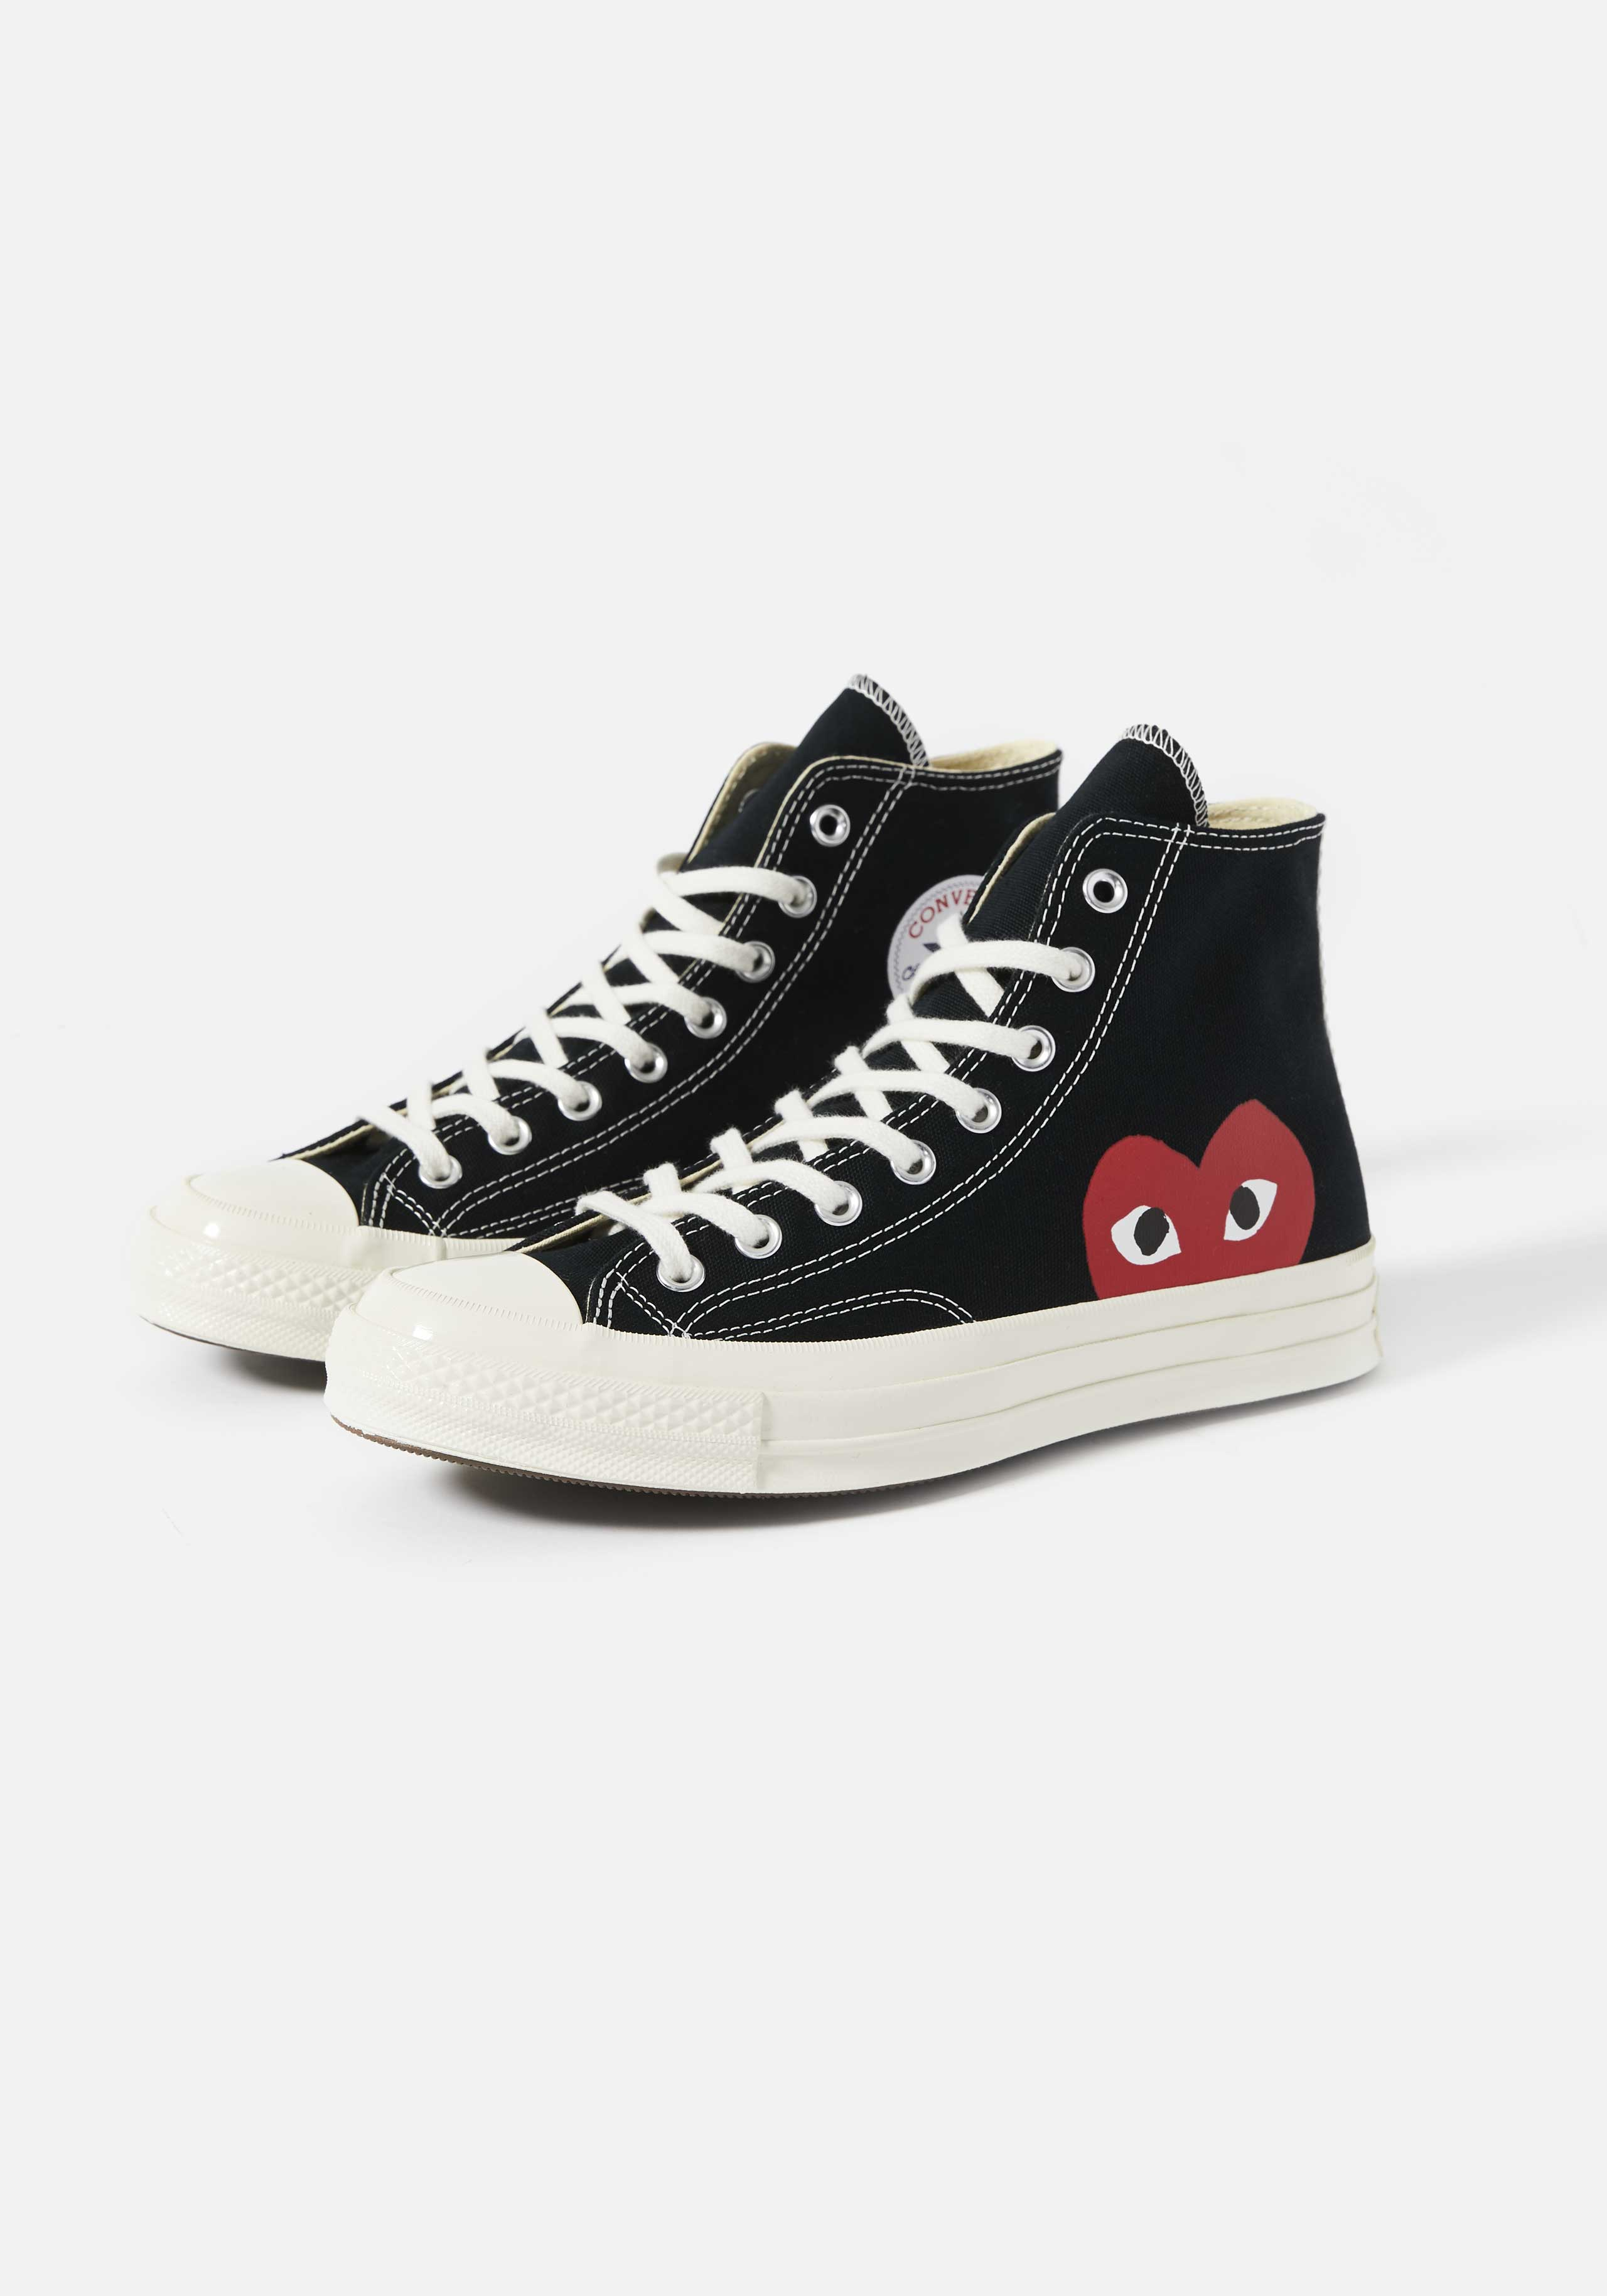 cdg play converse red heart 70s high 2